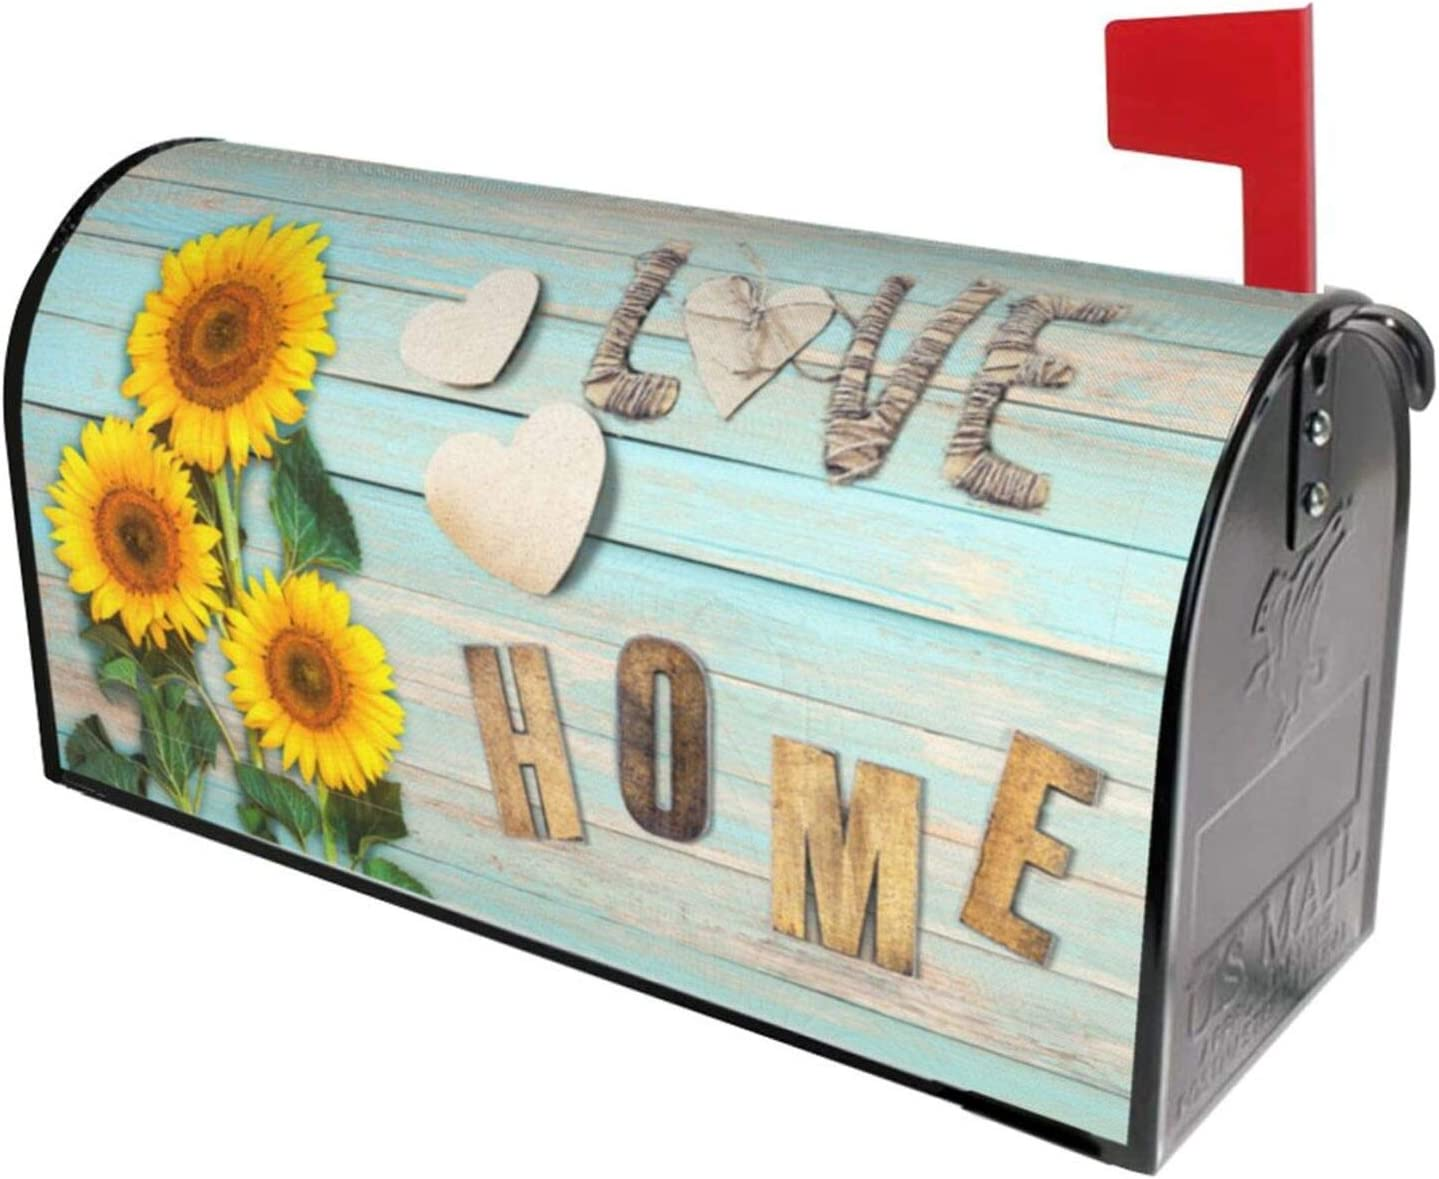 Granbey Retro Wooden Print Waterproof Magnetic Mailbox Cover Sunflower Dust-Proof Letterbox Covers Sweet Saying Love Home Sun Protection Polyester Fashion Post Box Covers Home Garden Decor 18 X 21